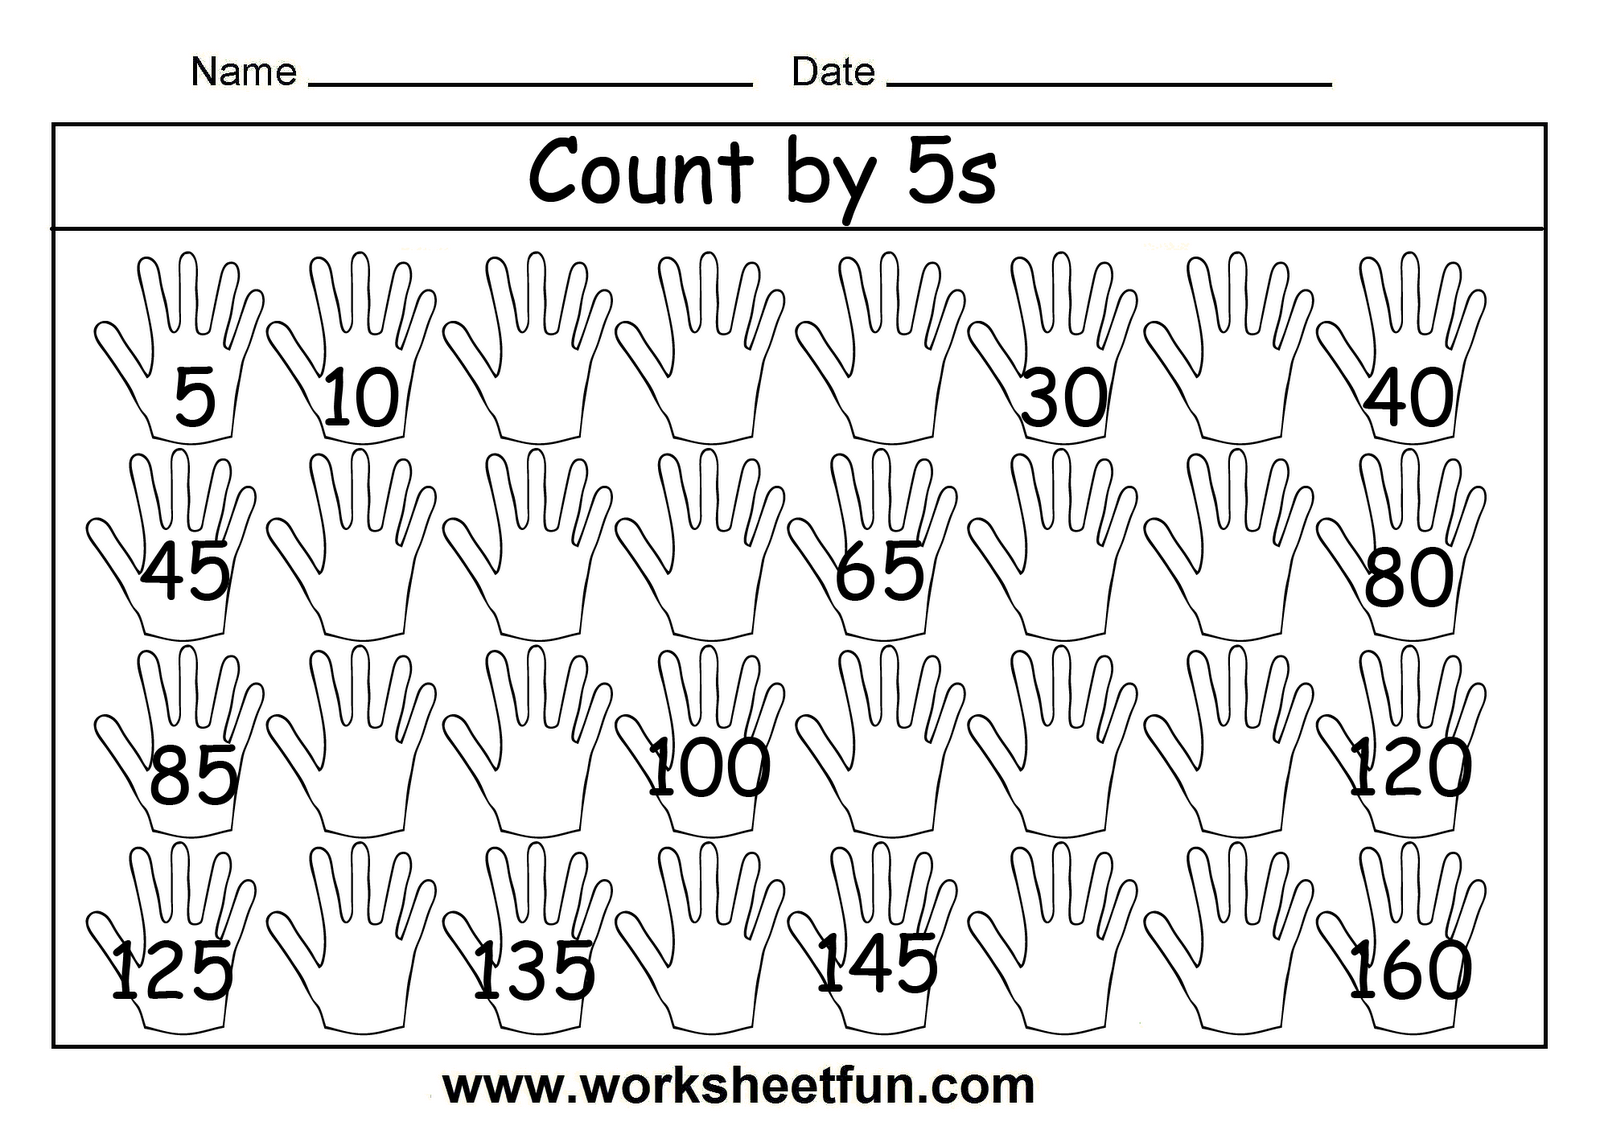 Counting By Fives With Images